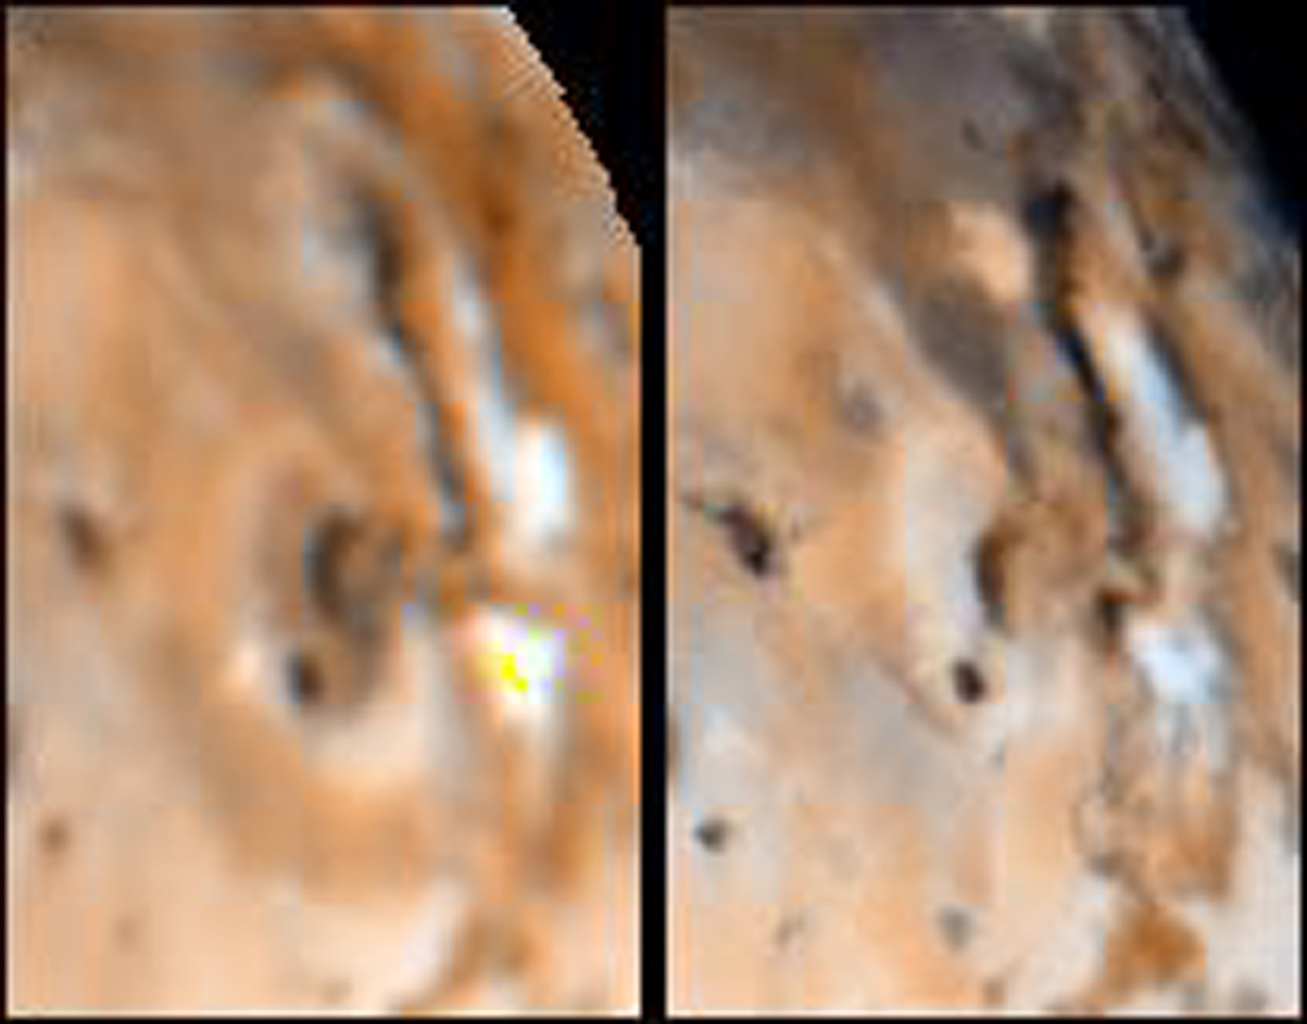 Detail of changes on Jupiter's moon Io in the region around Maui and Amirani as seen by NASA's Voyager 1 spacecraft in April 1979 (left frame) and NASA's Galileo spacecraft in September 1996 (right frame).